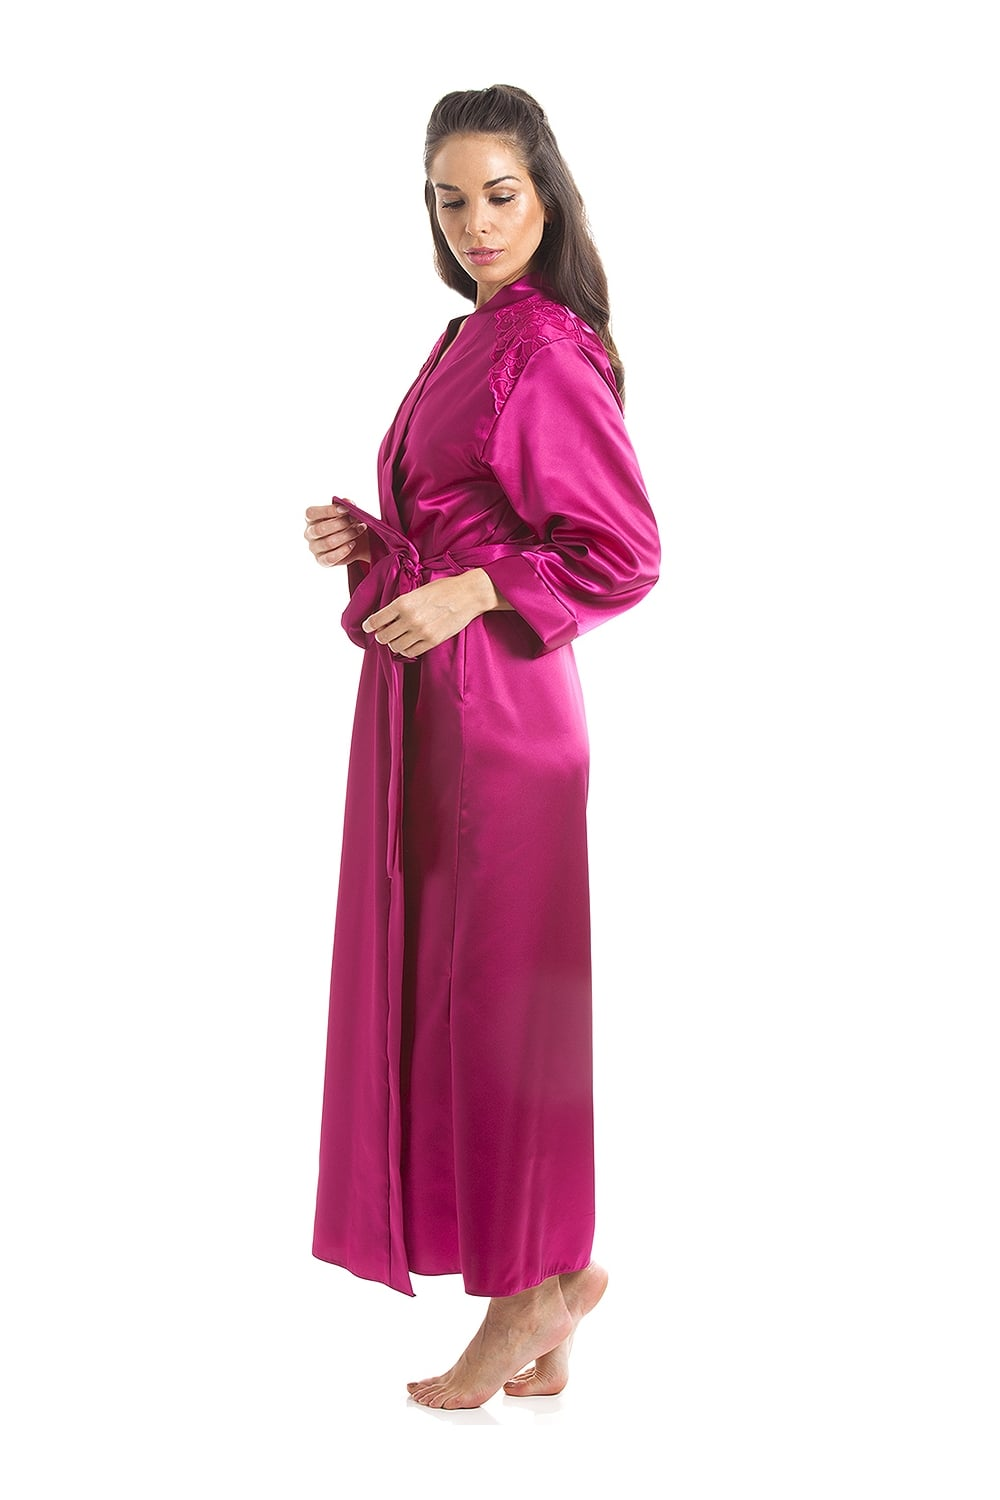 Luxury Pink Satin Long Length Dressing Gown Wrap